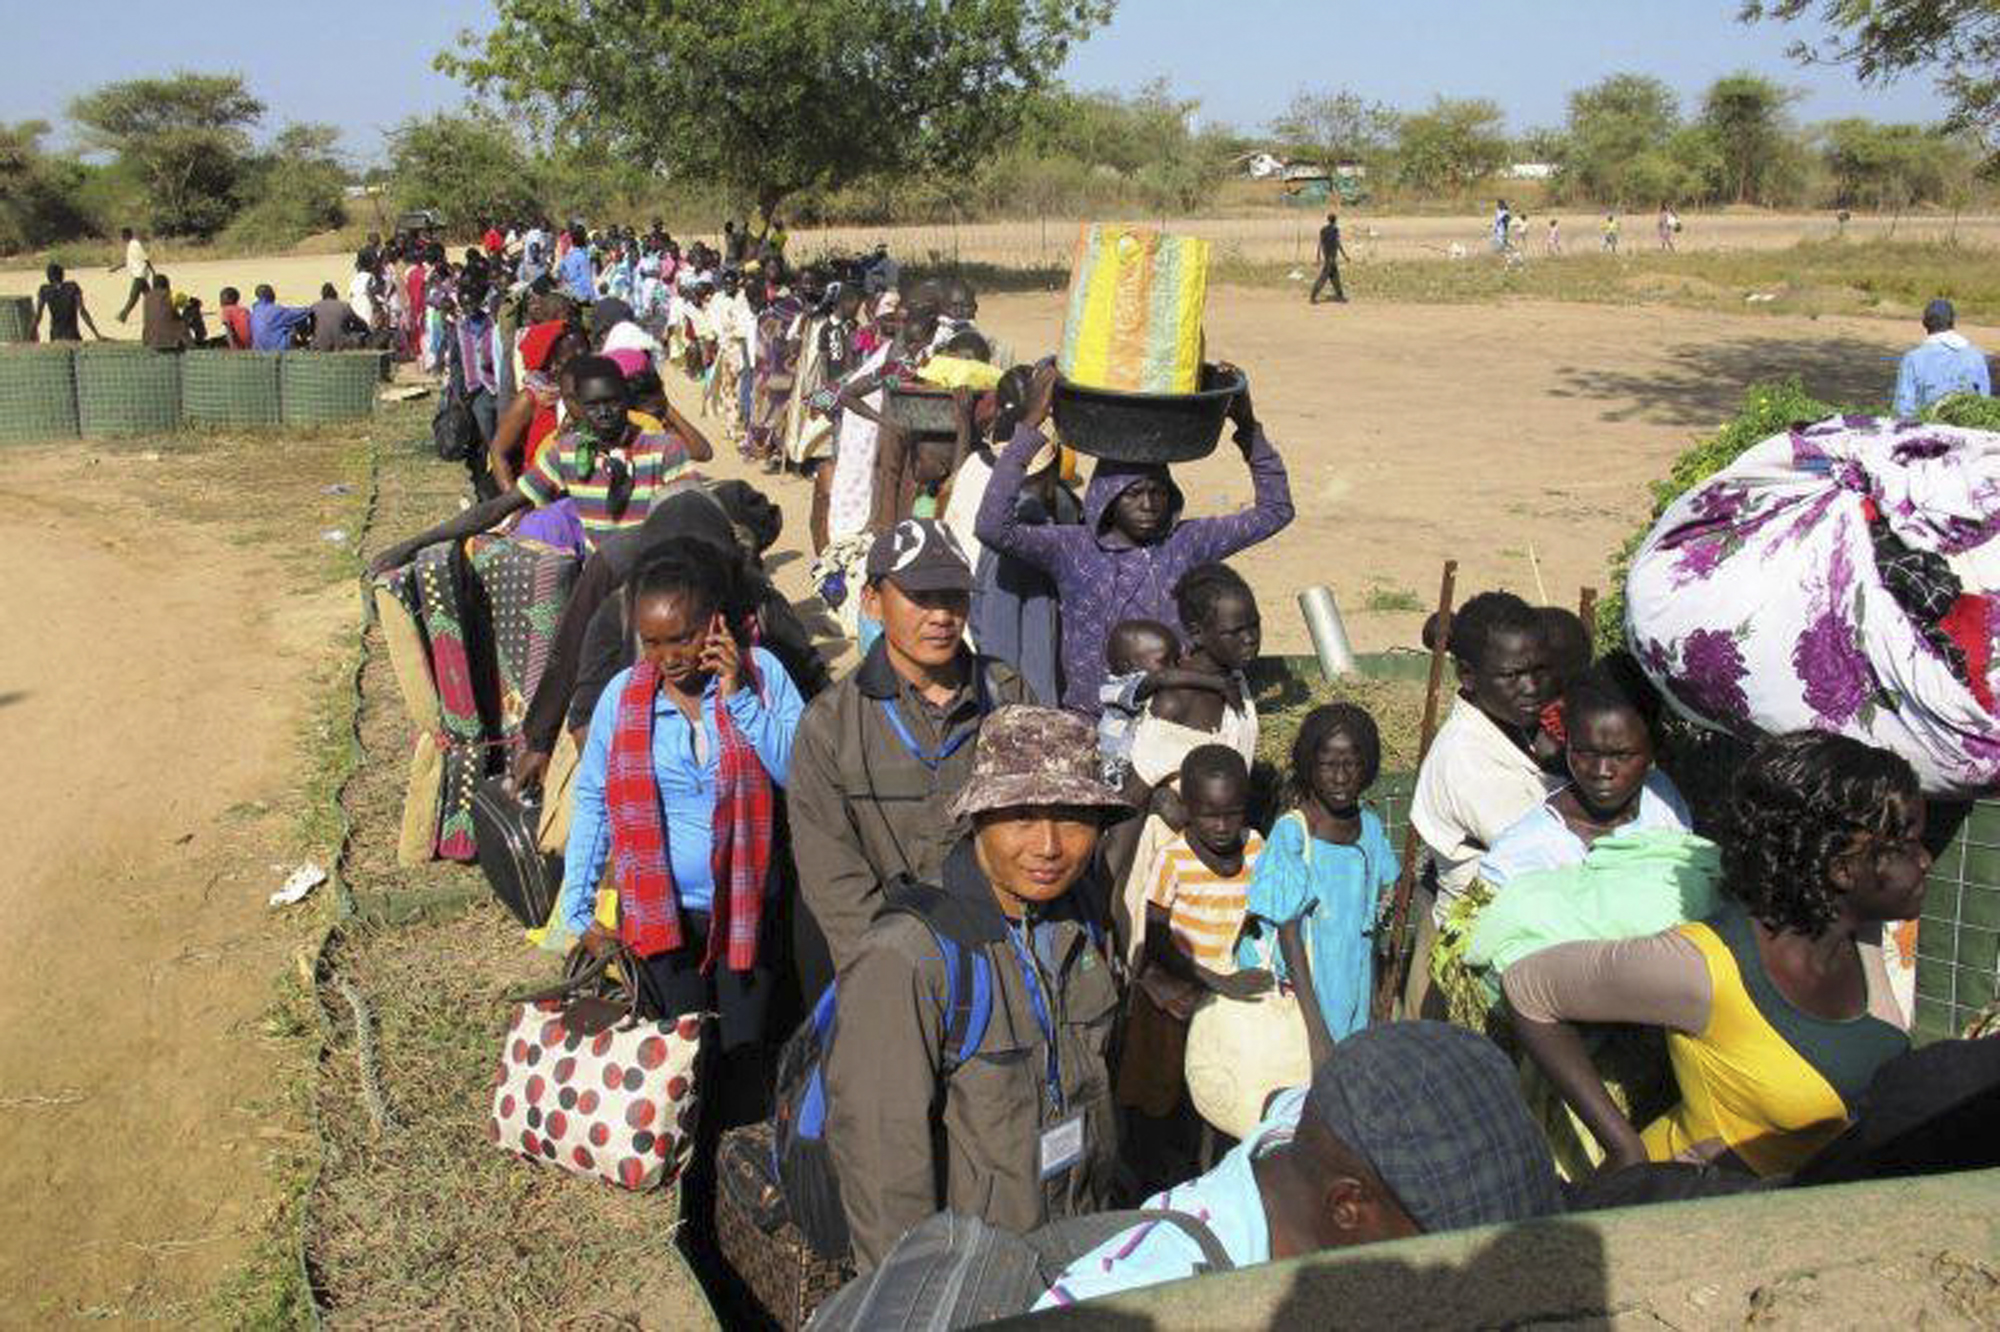 In this photo taken Wednesday, Dec. 18, 2013 and released by the United Nations Mission in South Sudan (UNMISS), civilians fleeing violence seek refuge at the UNMISS compound in Bor, capital of Jonglei state, in South Sudan.